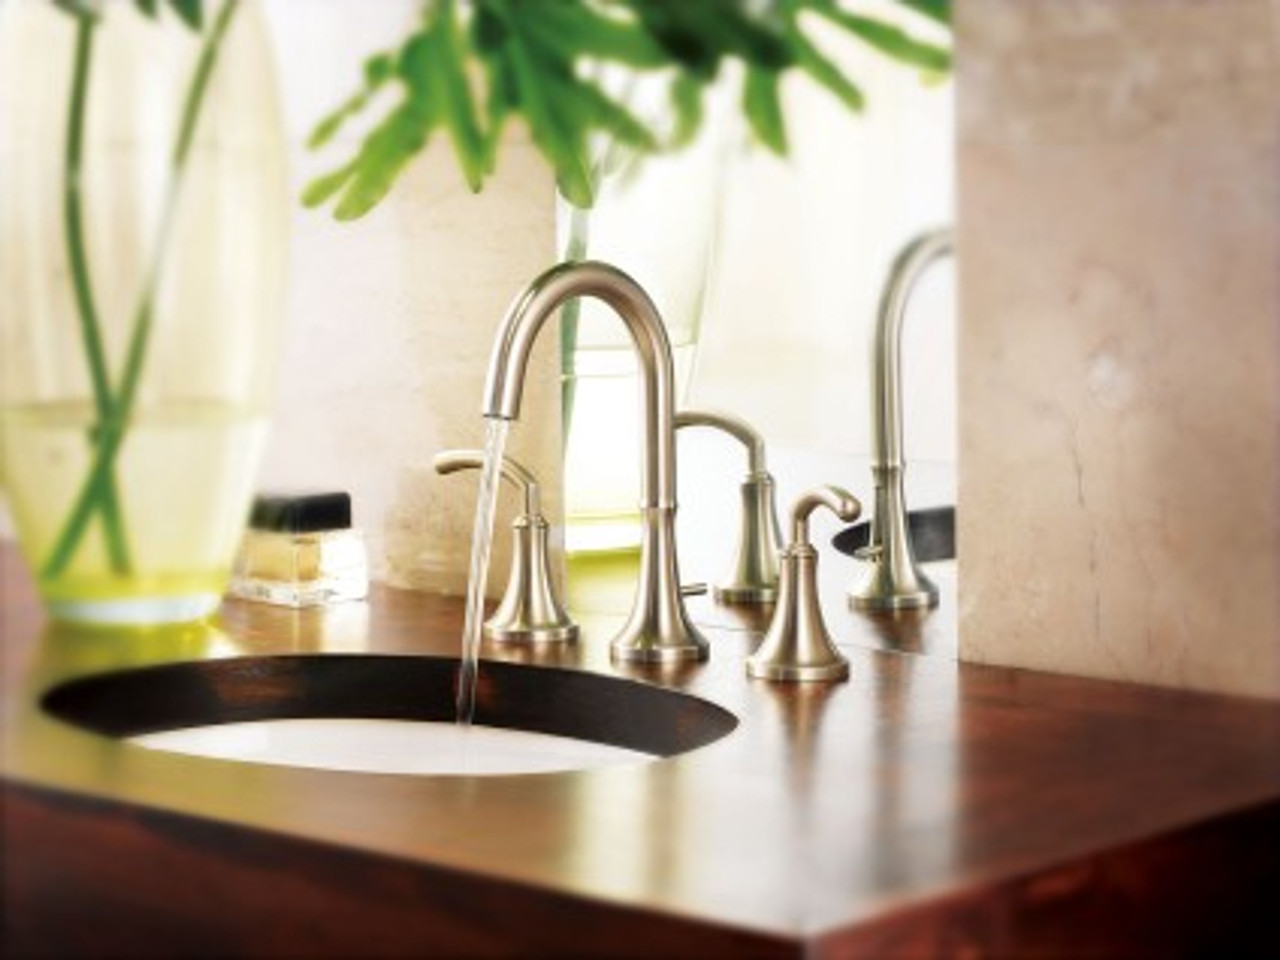 Moen TS6520 Icon Two-Handle High Arc Bathroom Faucet without Valve Chrome